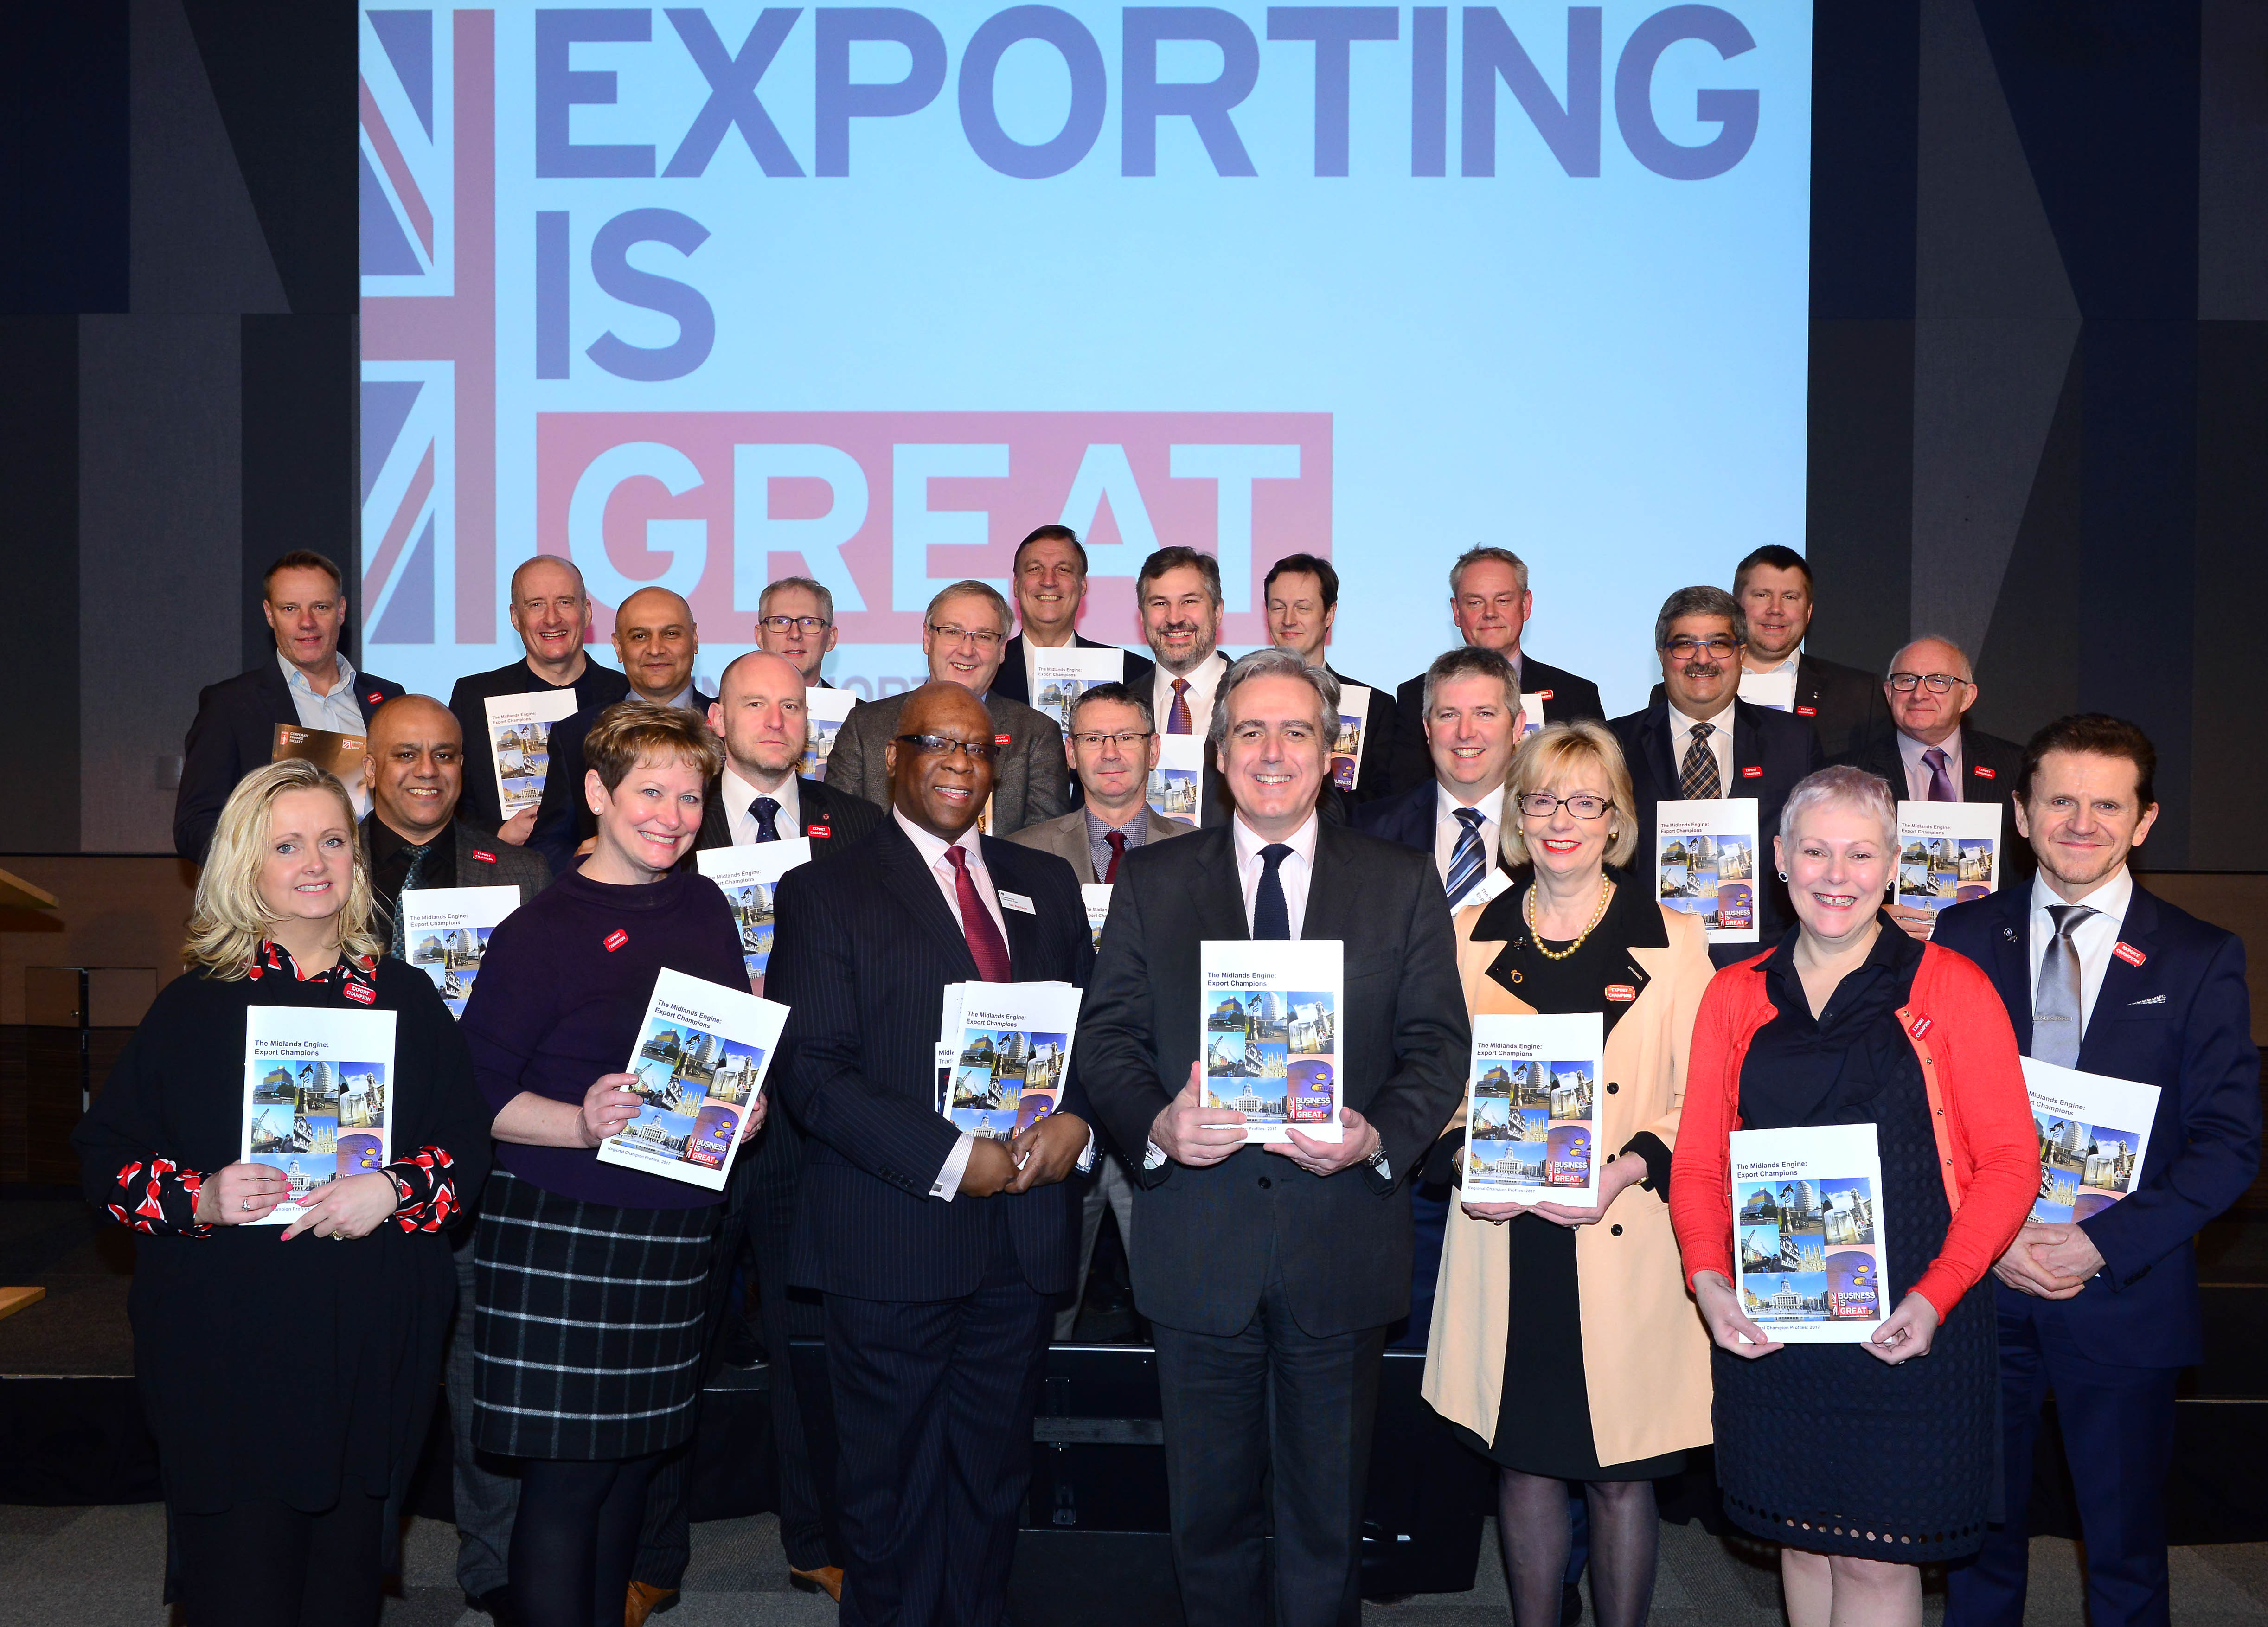 Forensic Pathways CEO Deb Leary OBE (bottom right) as Export Champion